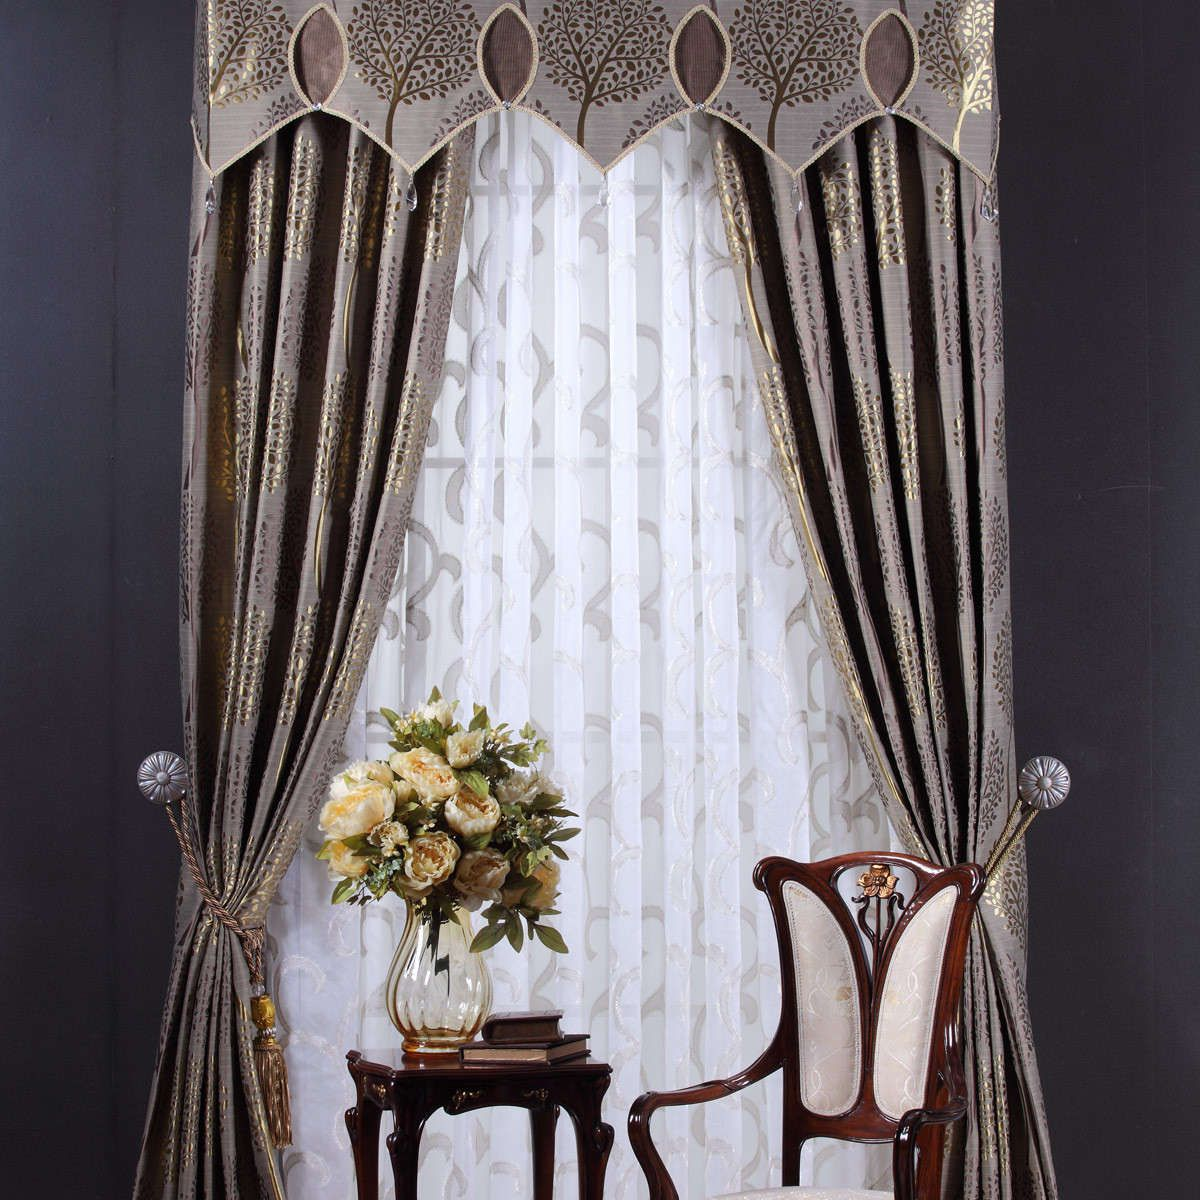 Upscale Drapes | -mural-pattern-luxury-bedroom-drapery-window ...